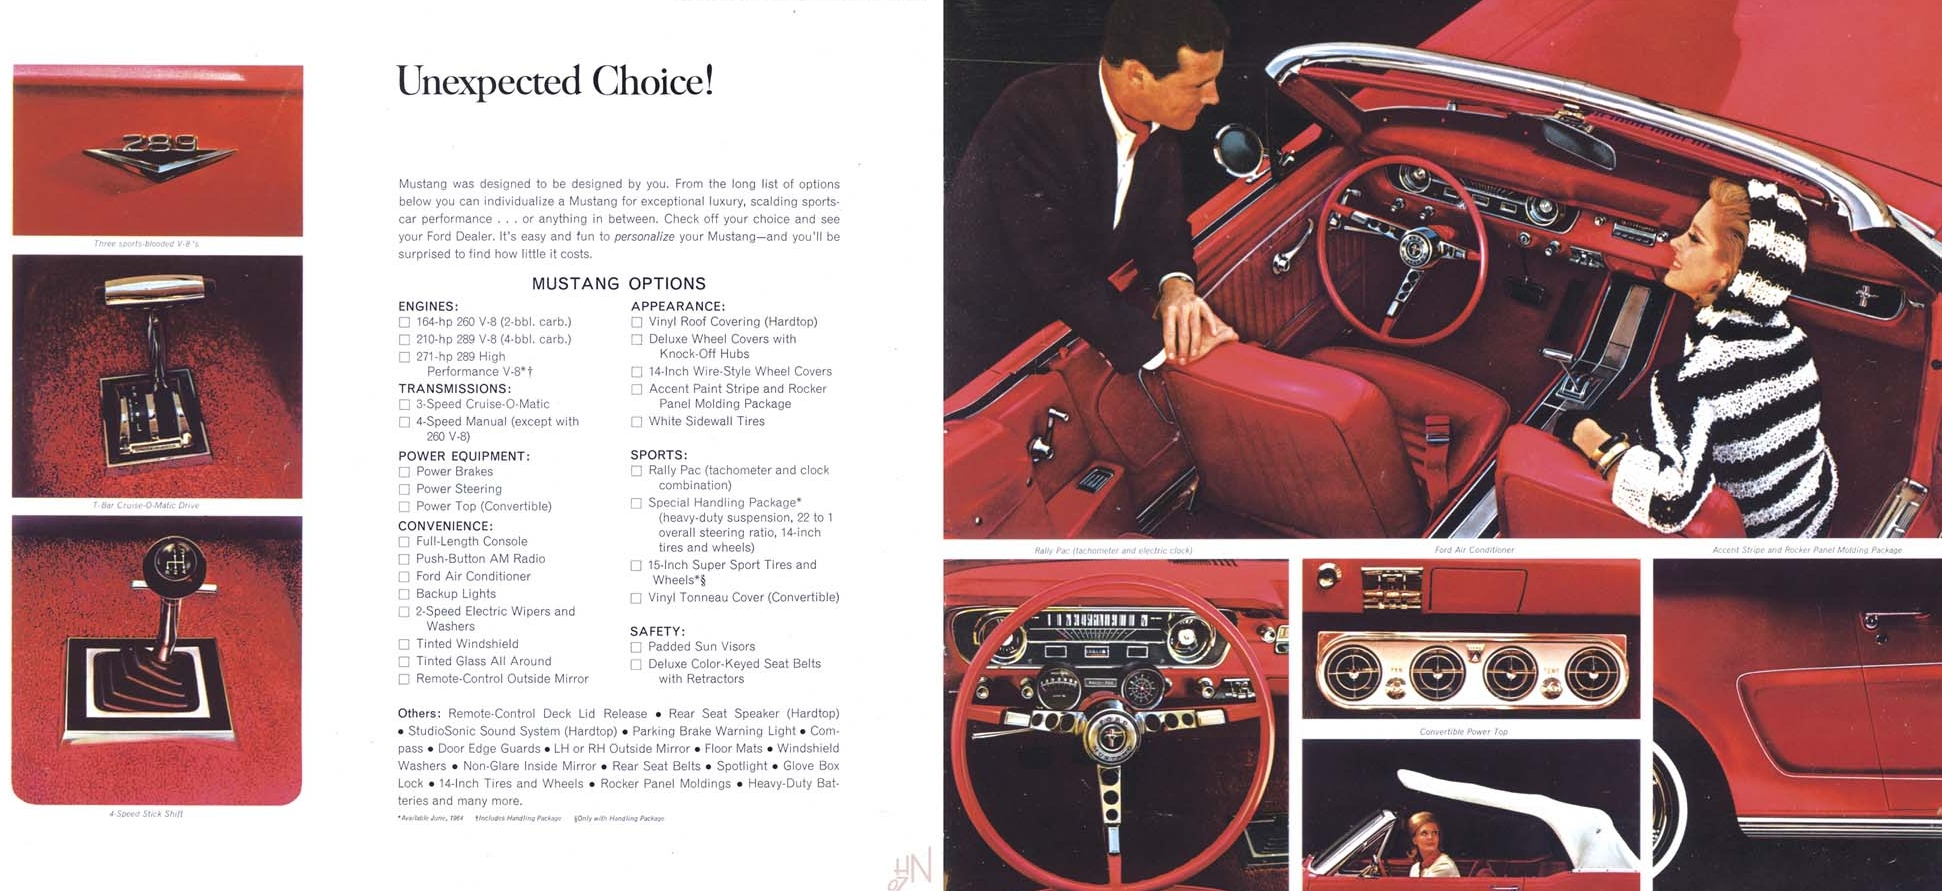 Mustang for 1965 - unexpected choice!